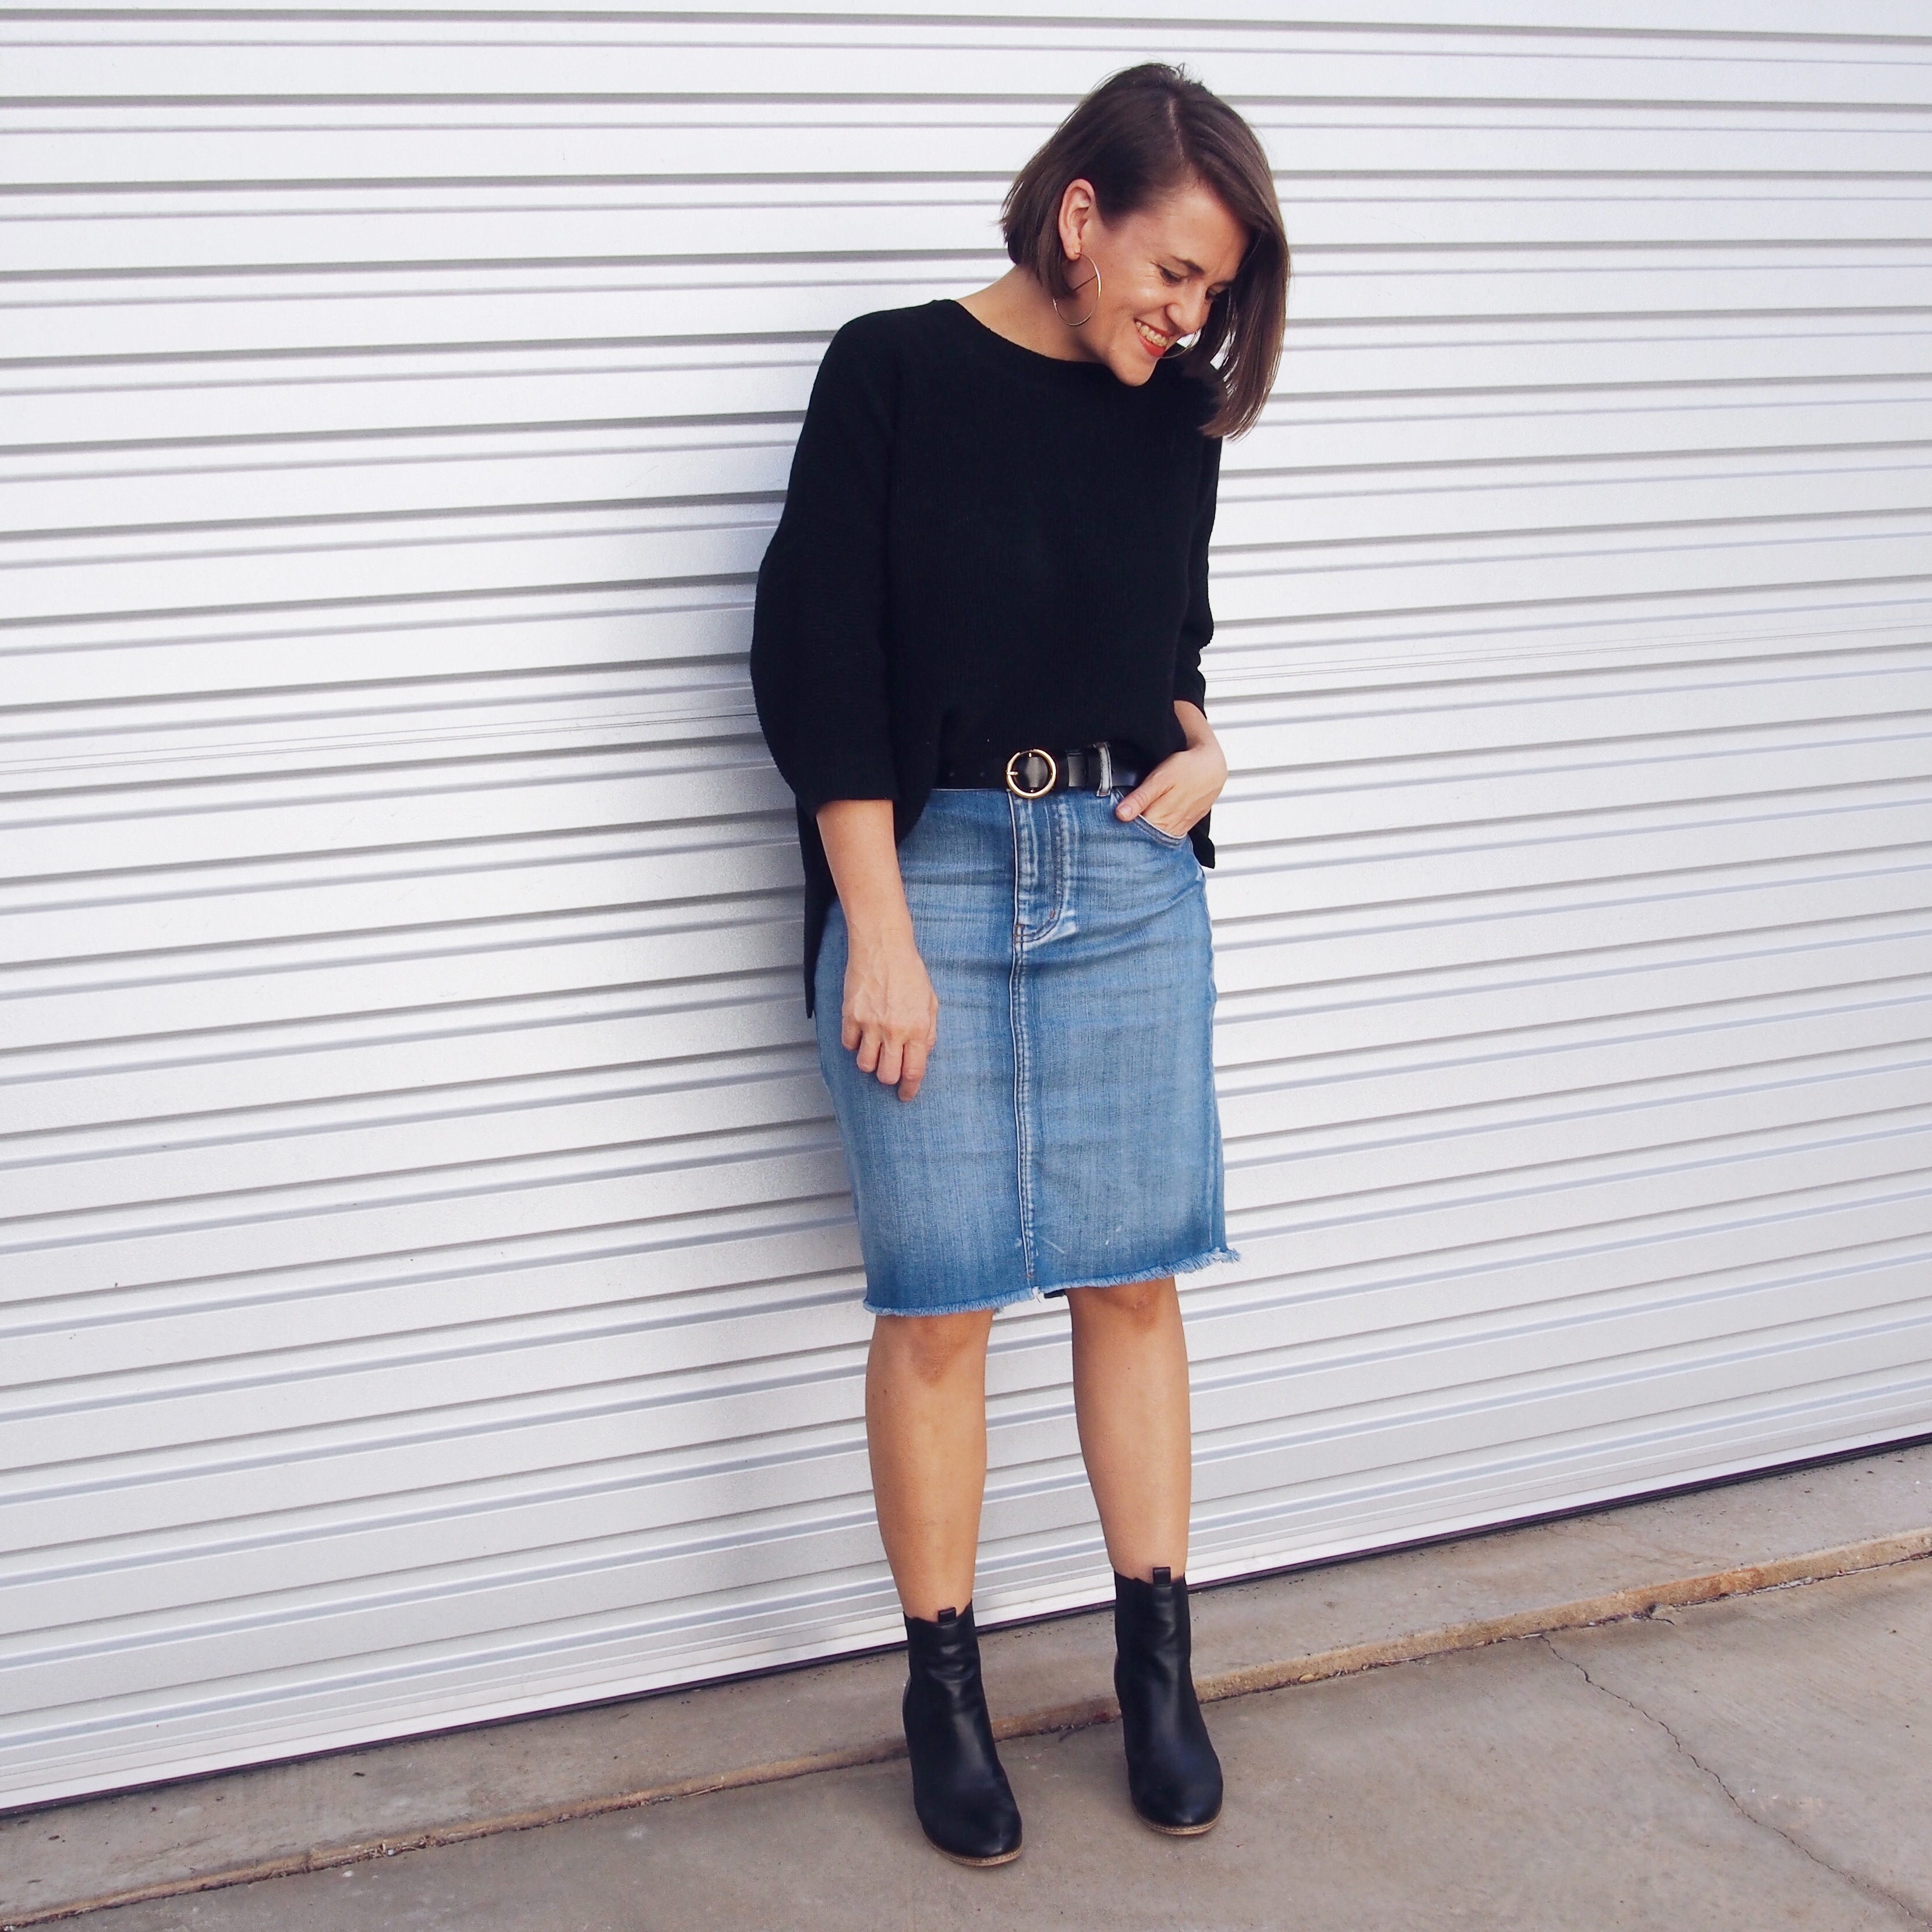 knit top denim skirt outfit pretty chuffed